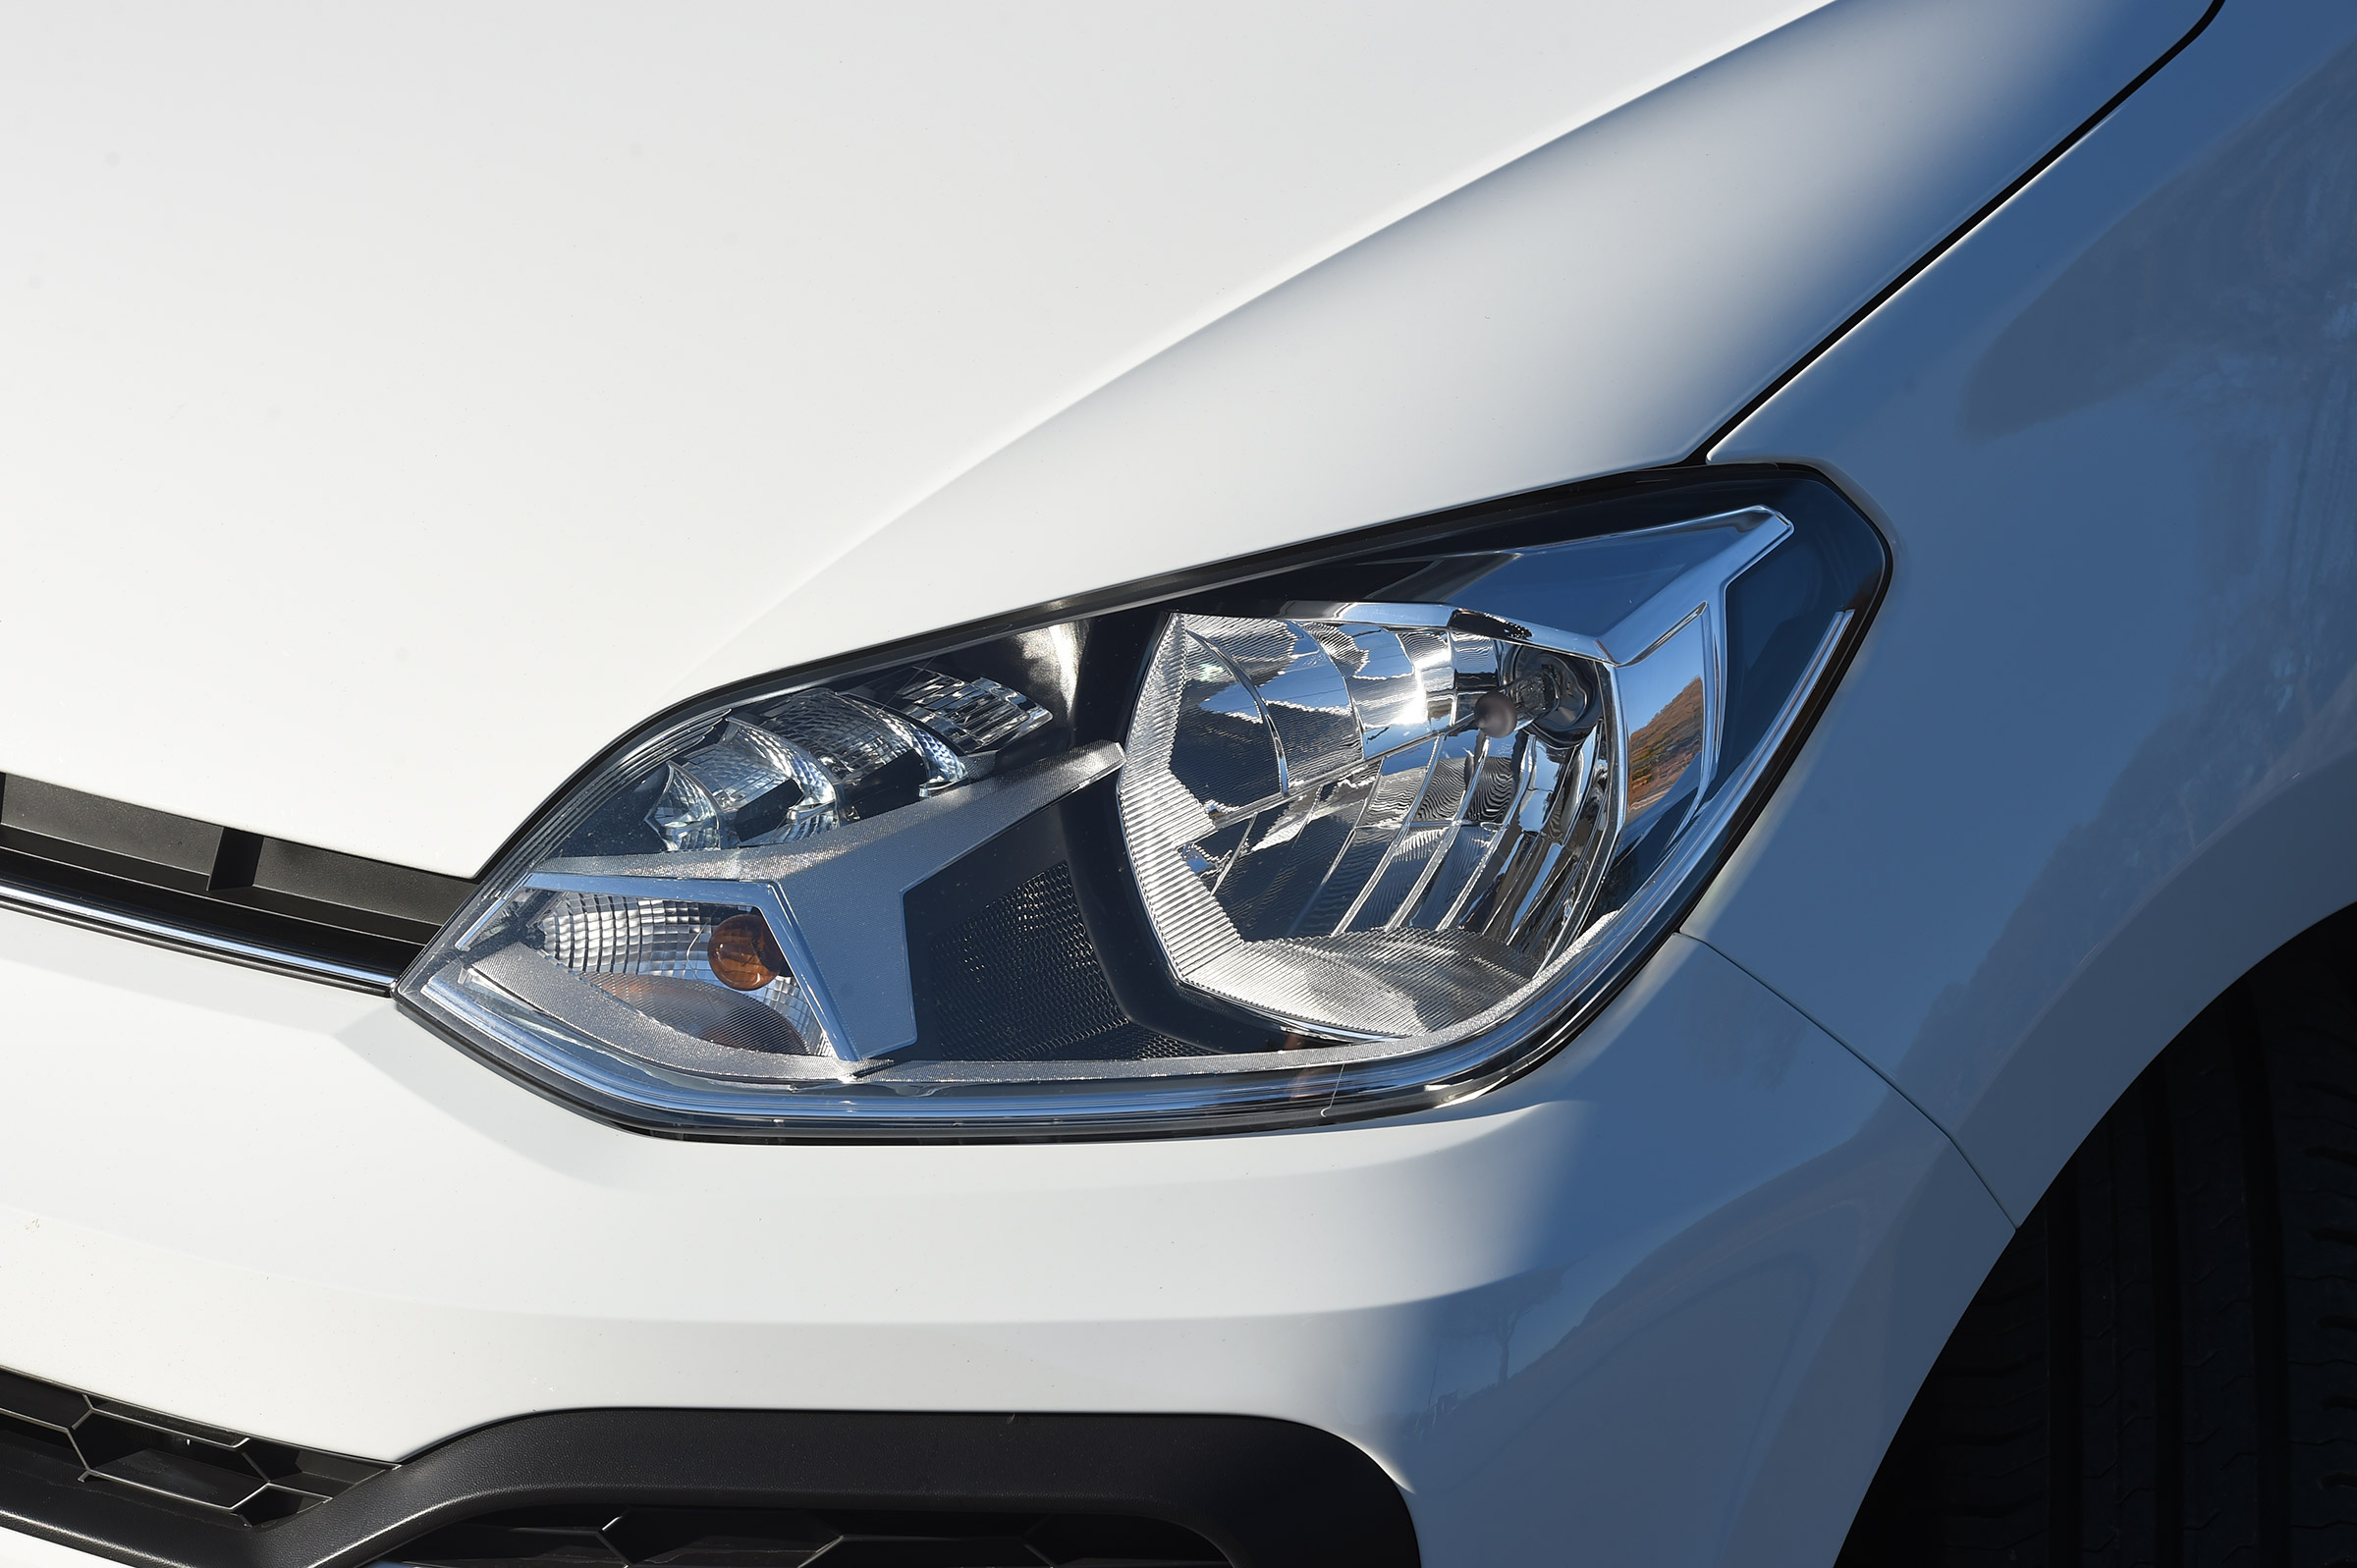 2017 Volkswagen Up Exterior White View Headlight (View 14 of 15)